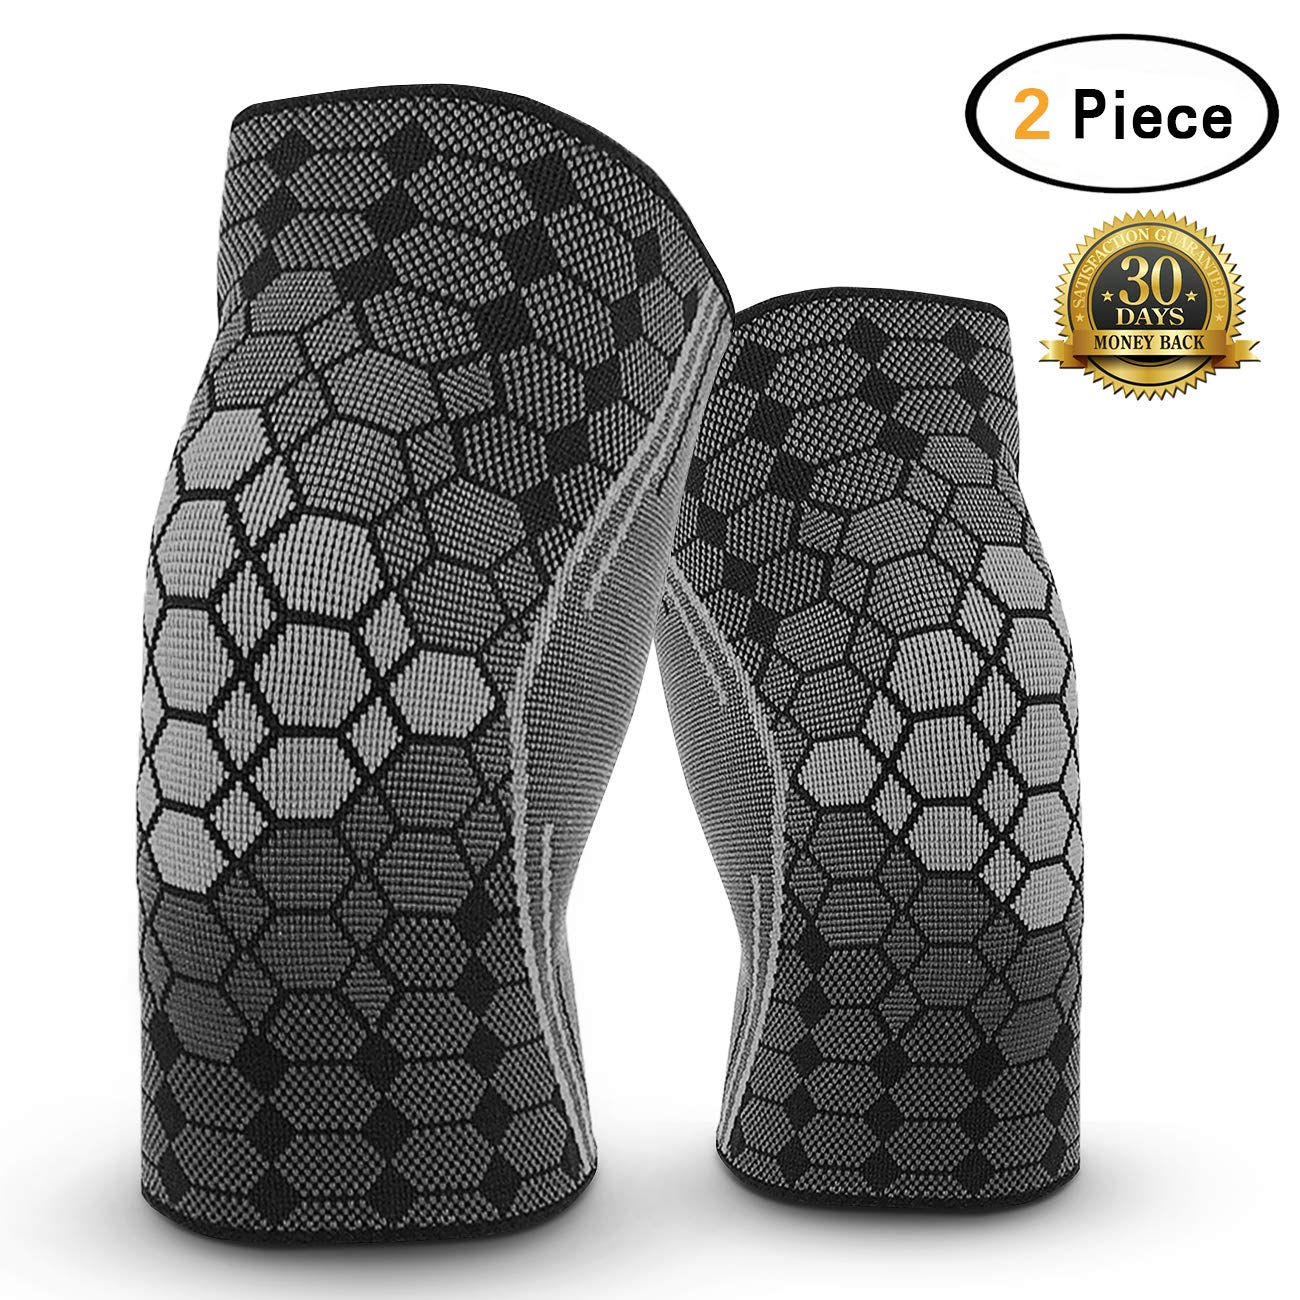 Dimiyer Compression Knee Brace Sleeve for Running Meniscus Tear Arthritis Weightlifting Crossfit Yogaing Recovery Lightweight Support Knee for Men and Women (2 Piece Black, Medium)